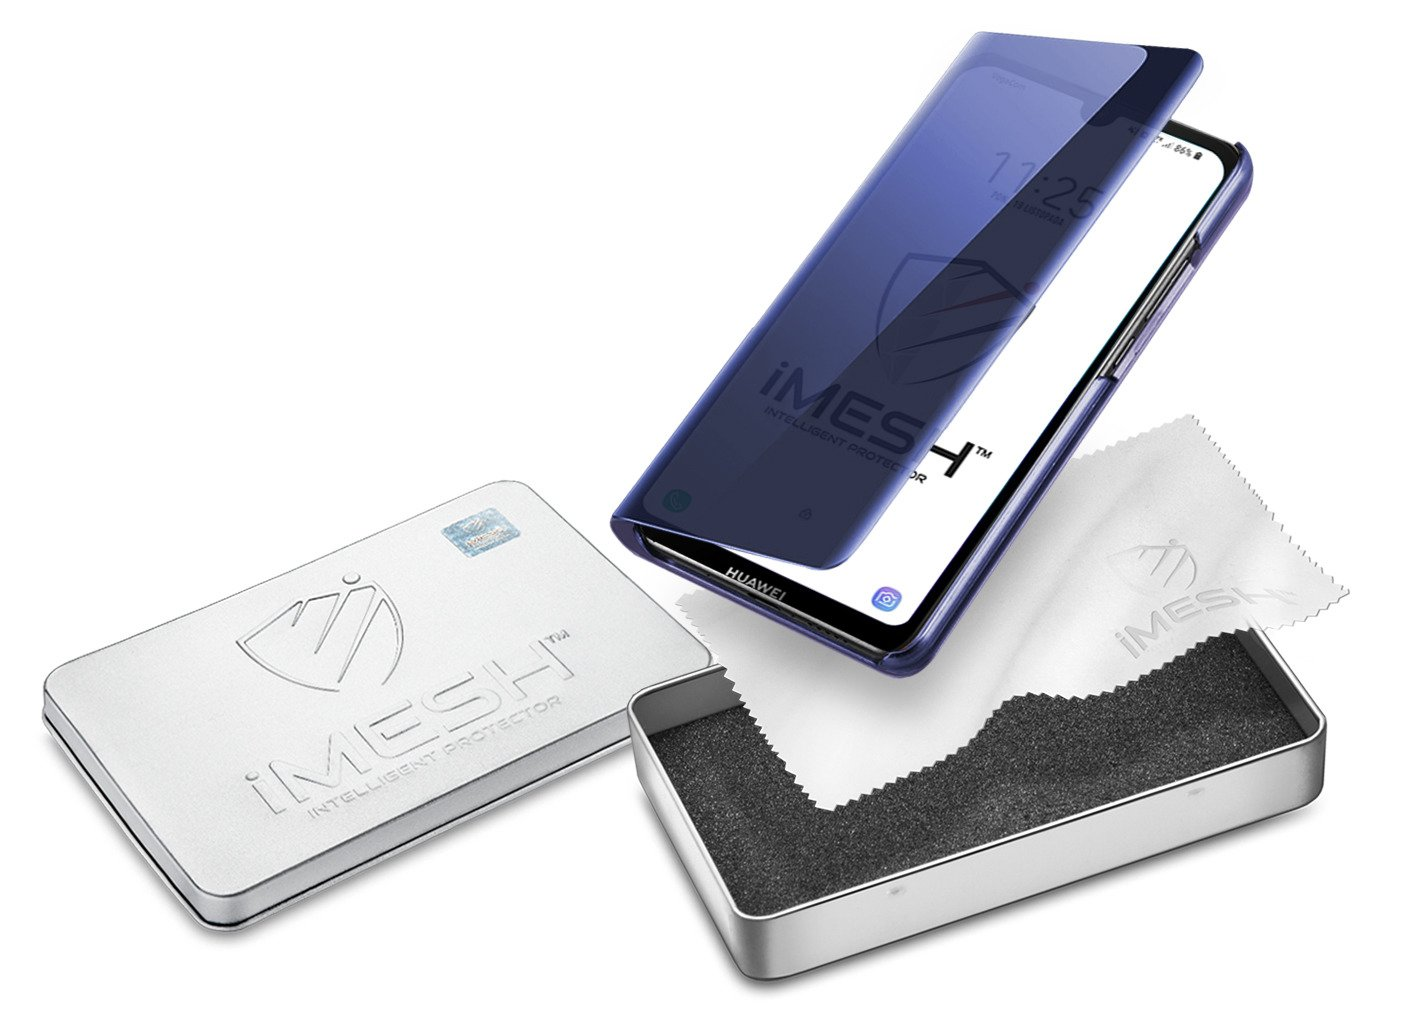 iMesh View case / cover in NAVY color for HUAWEI Y5 2019